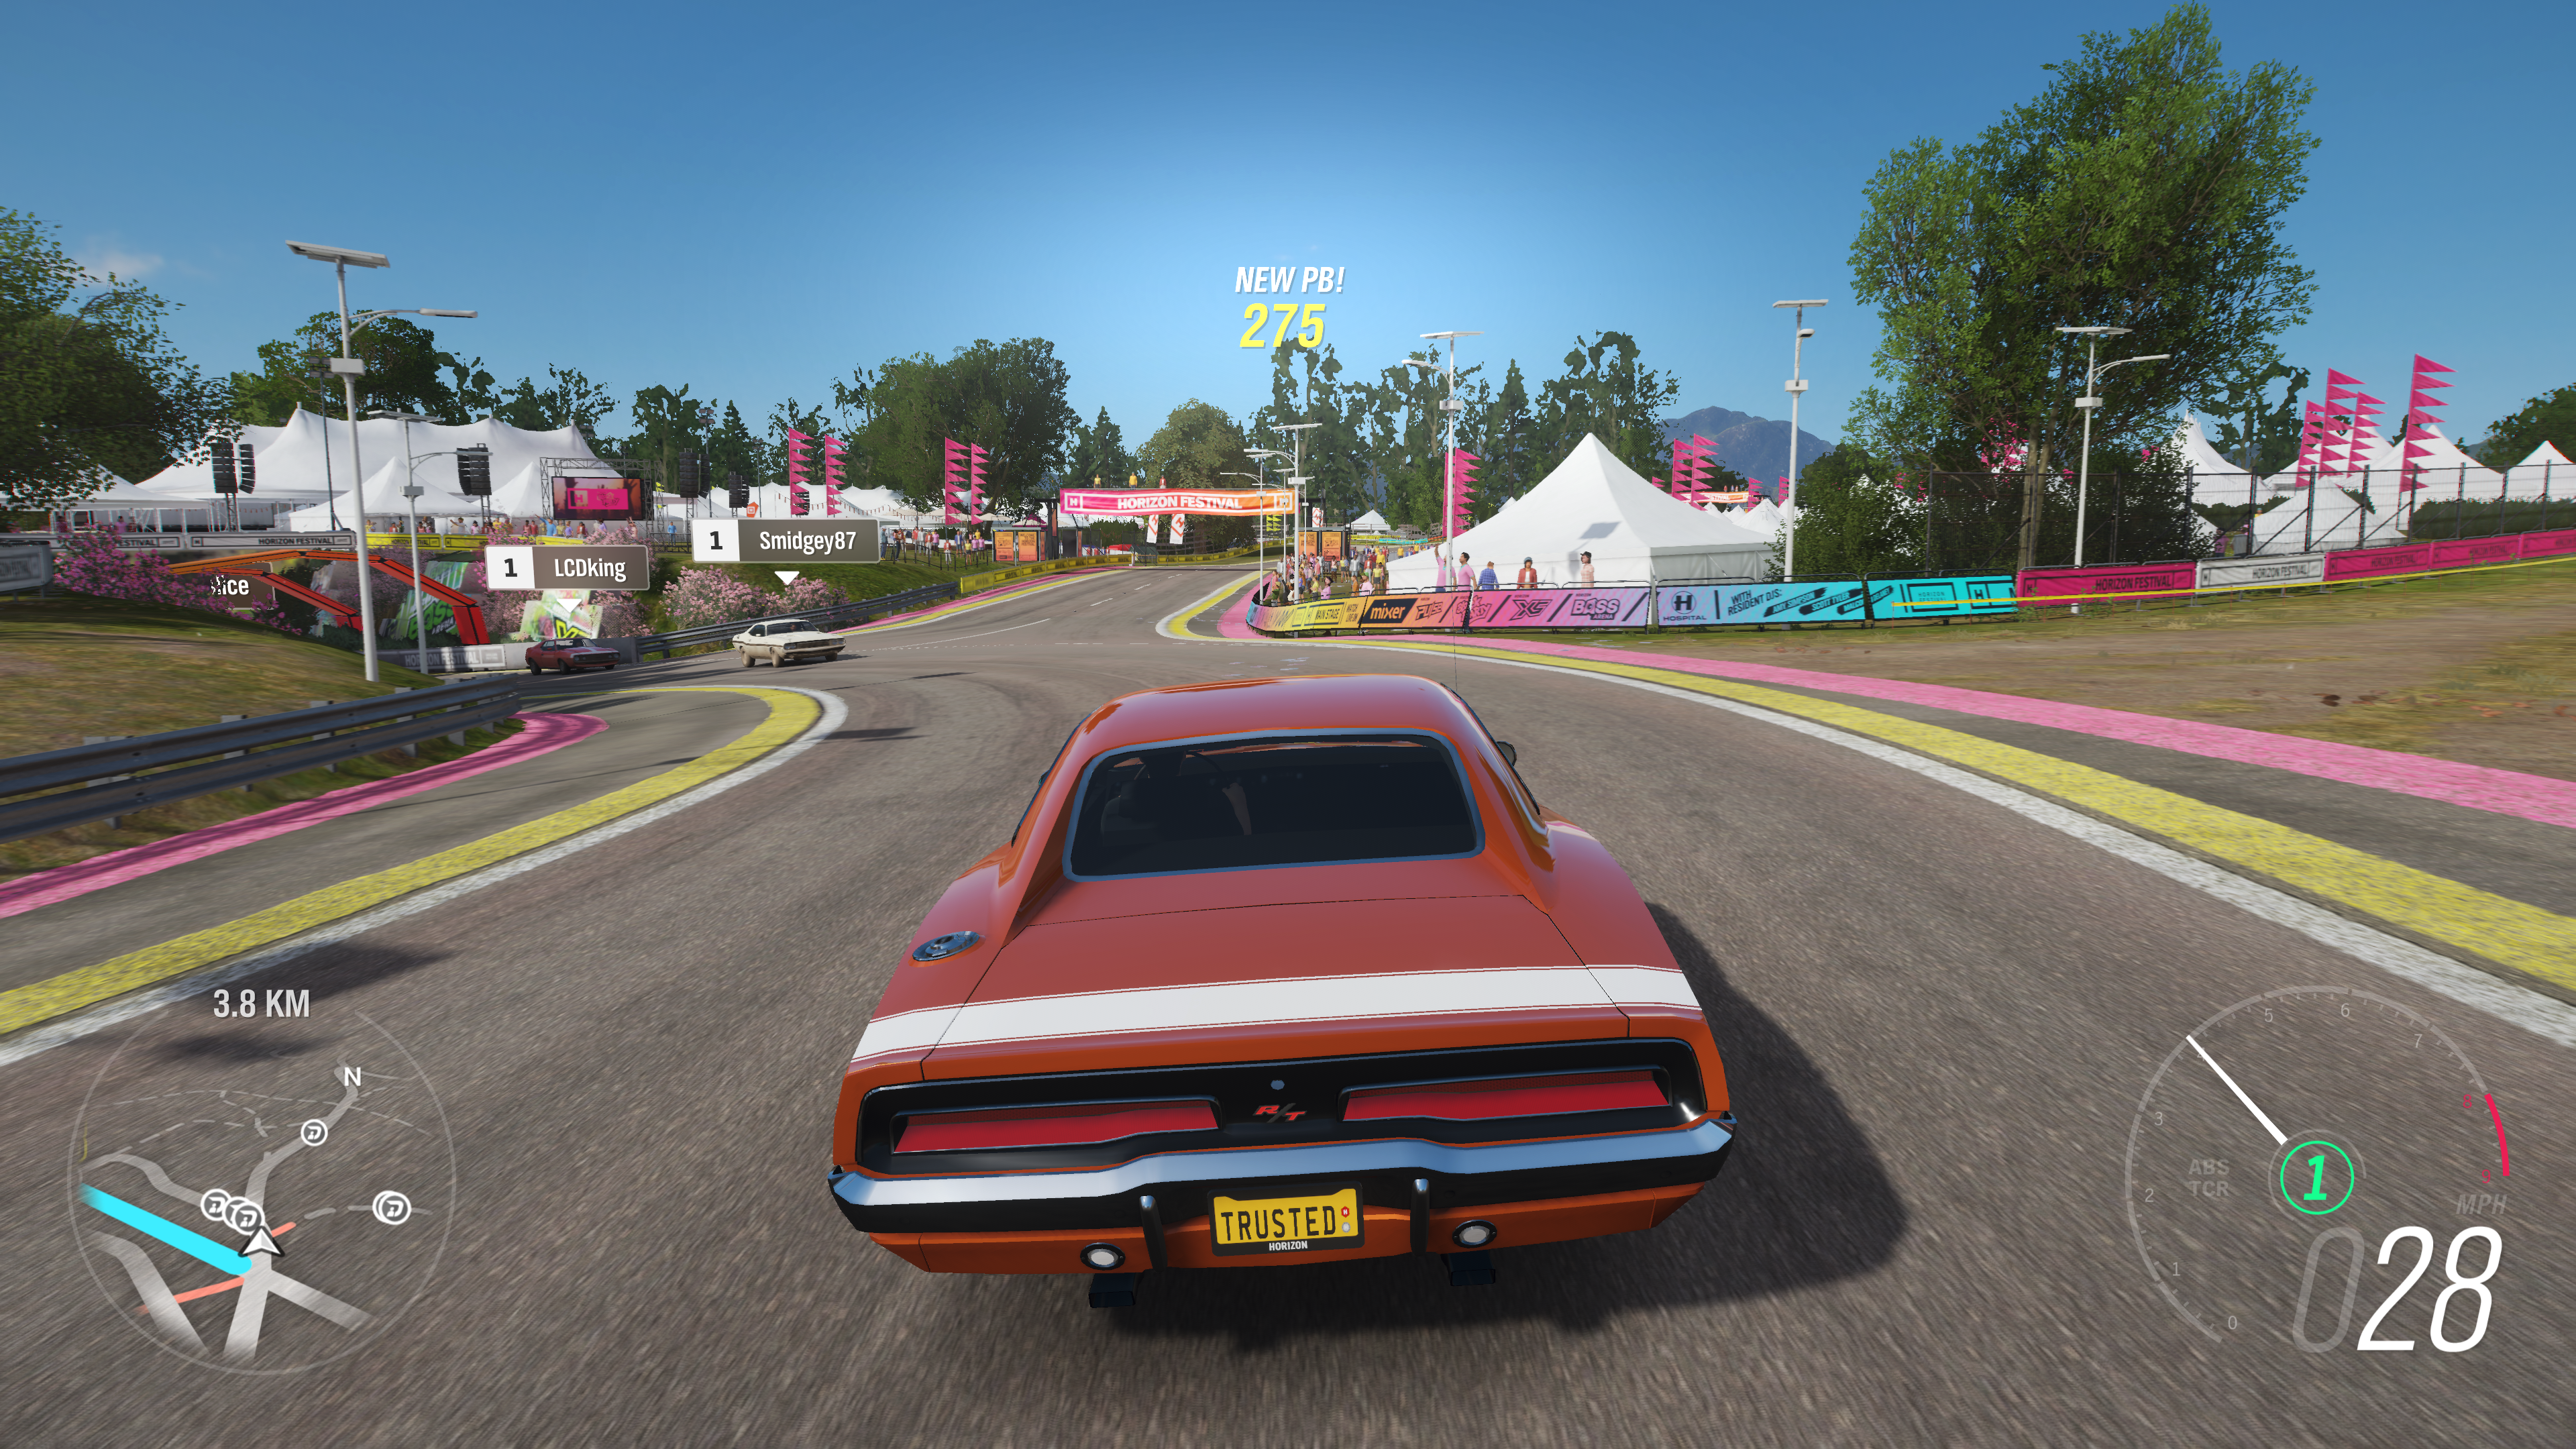 highway pursuit game free download for windows 7